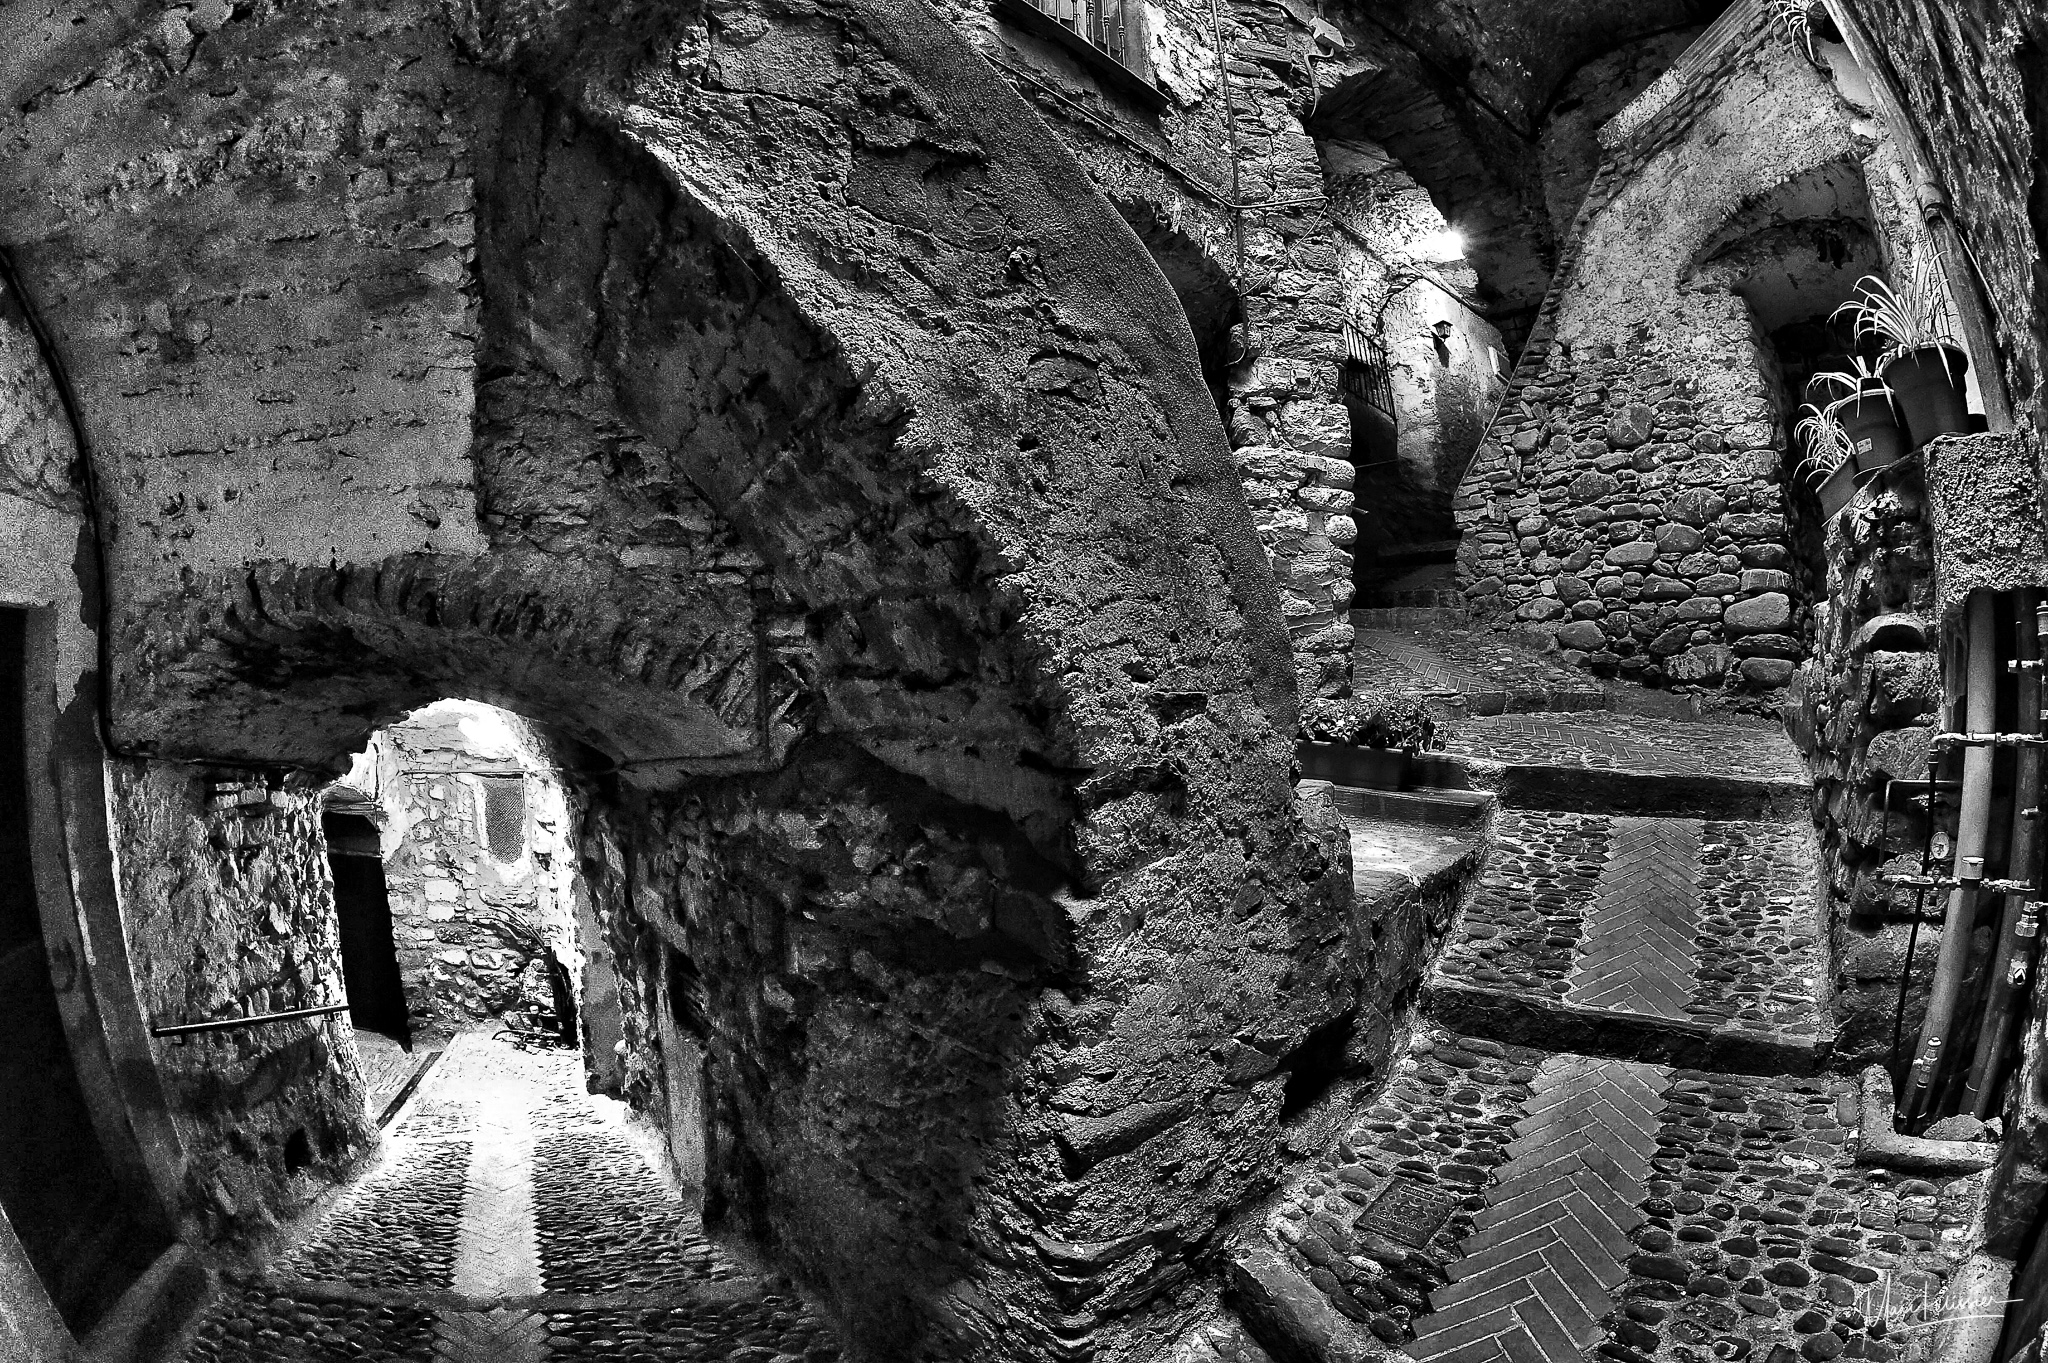 Rock tunnel in the heart of the DolceAcqua village, Italy